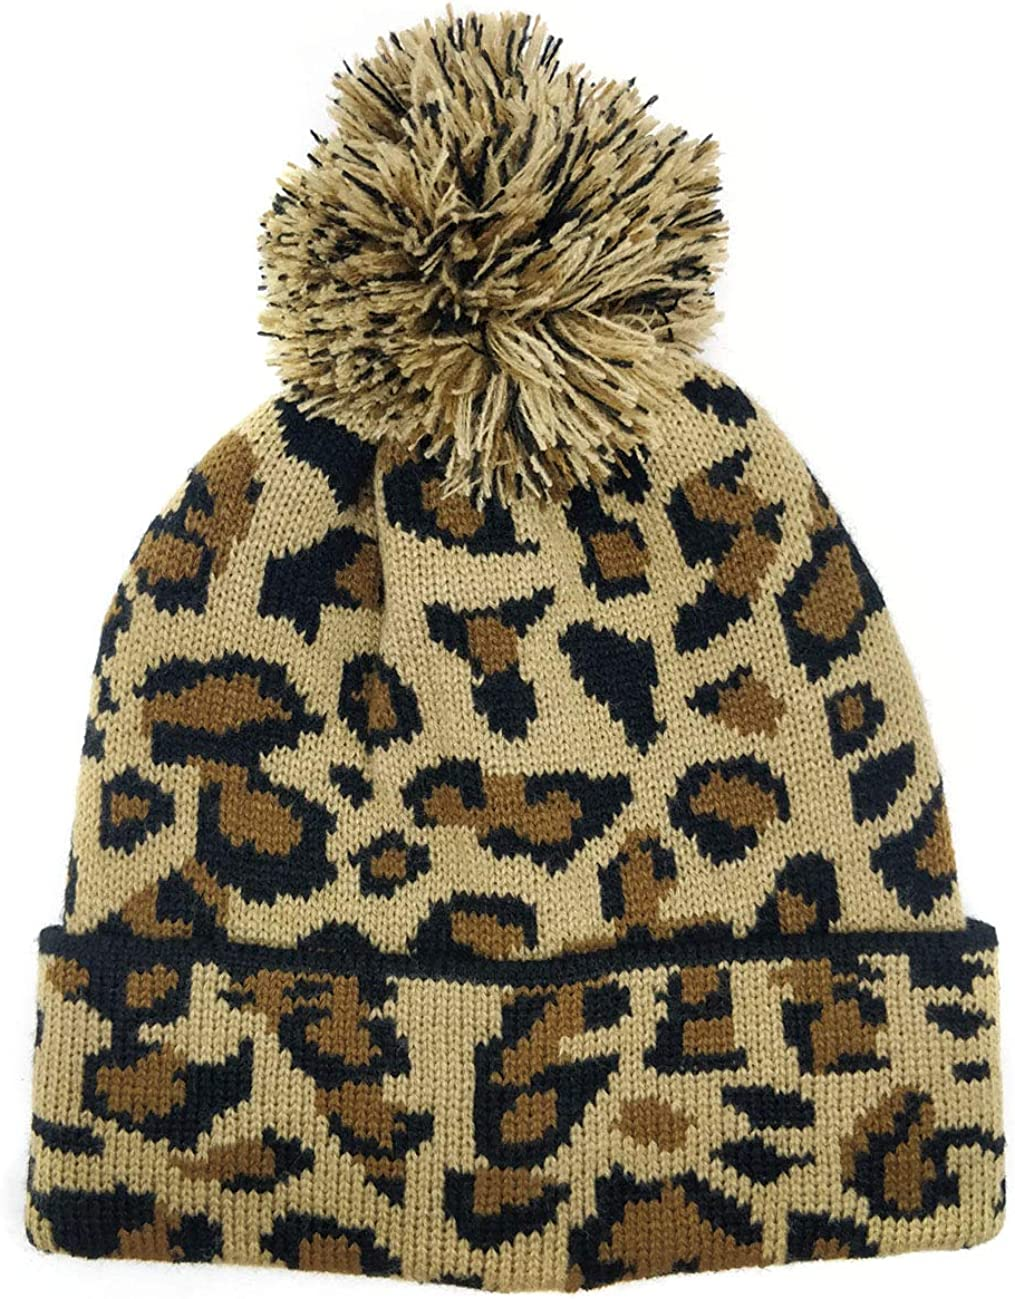 Womens Winter Cable Knit Beanie hat Luxury goods Max 85% OFF Chunky Hats Cute Funny Warm